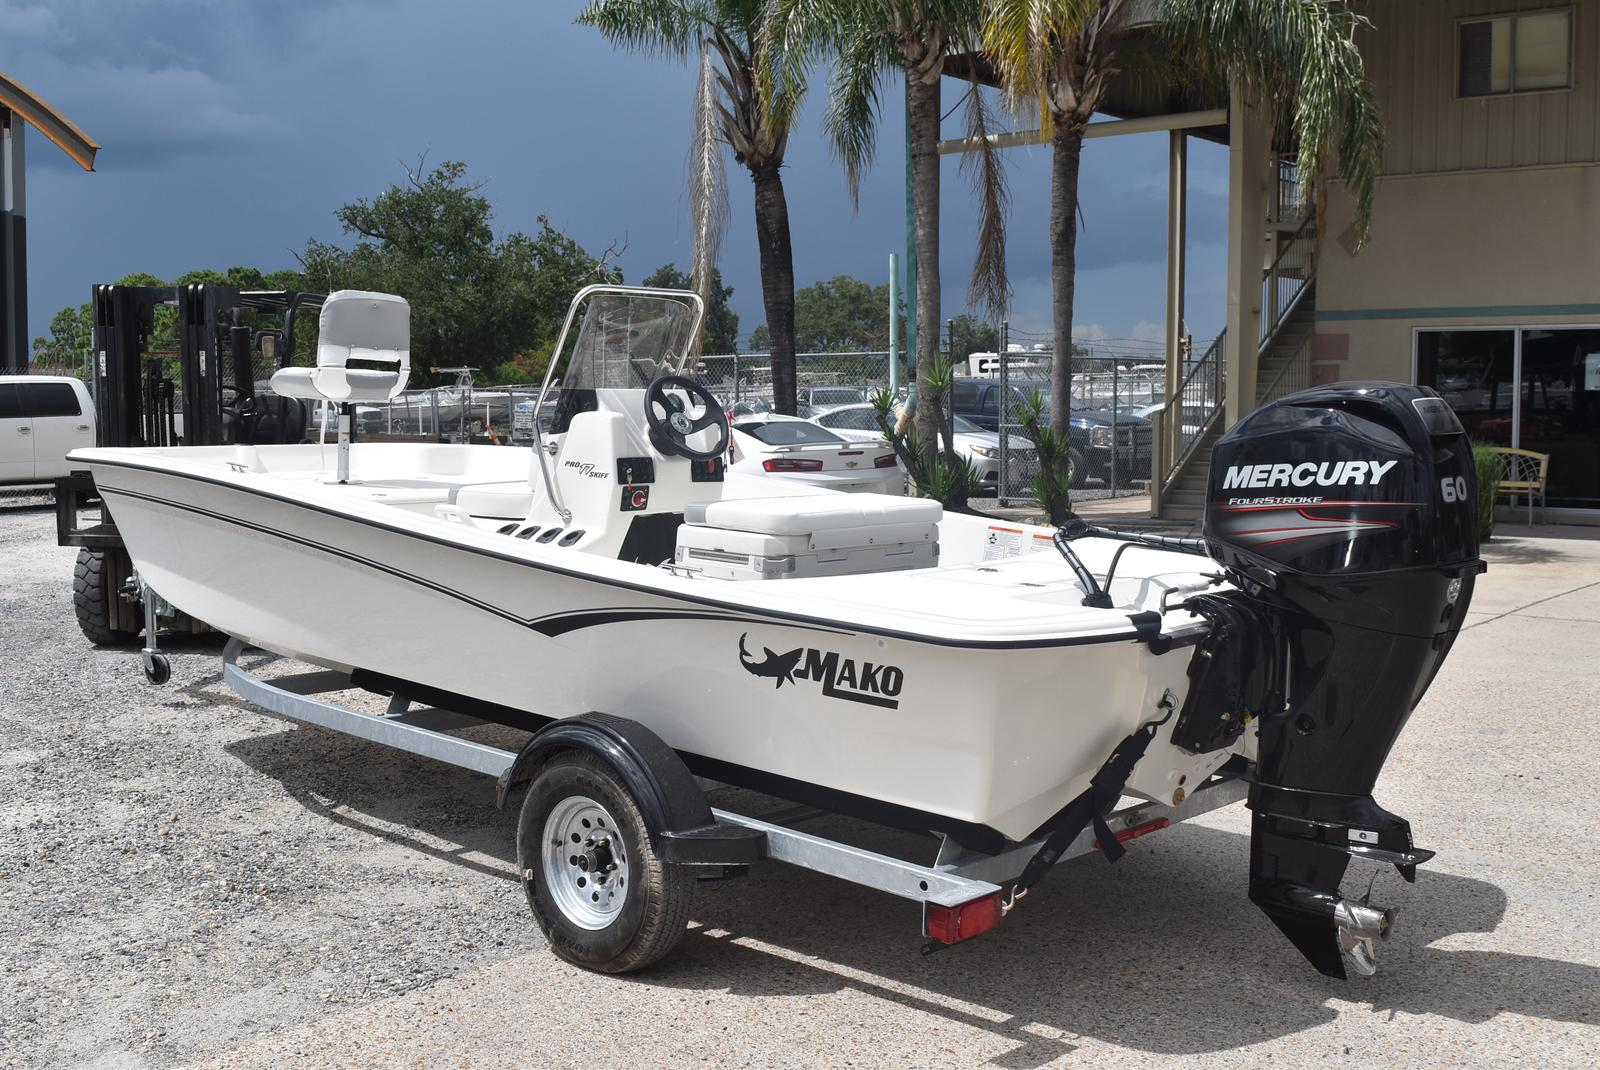 2020 Mako boat for sale, model of the boat is Pro Skiff 17, 75 ELPT & Image # 229 of 702